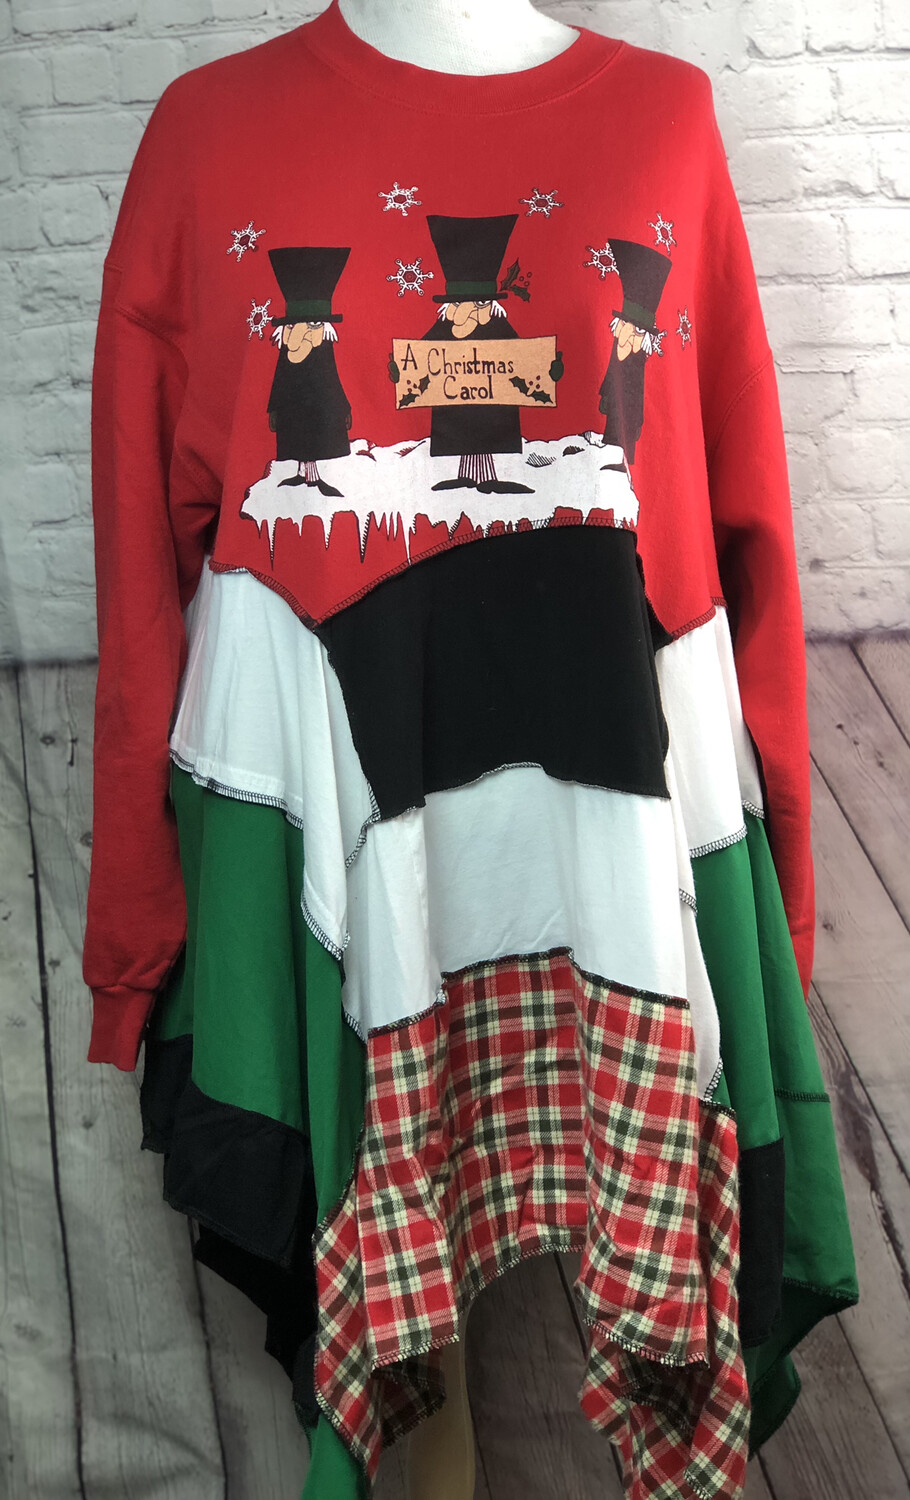 Christmas Sustainable Fashion S Threads Recreated Recycled Bah Humbug Aline Lagenlook Flare A Christmas Carol Sweatshirt Size 3X 4X